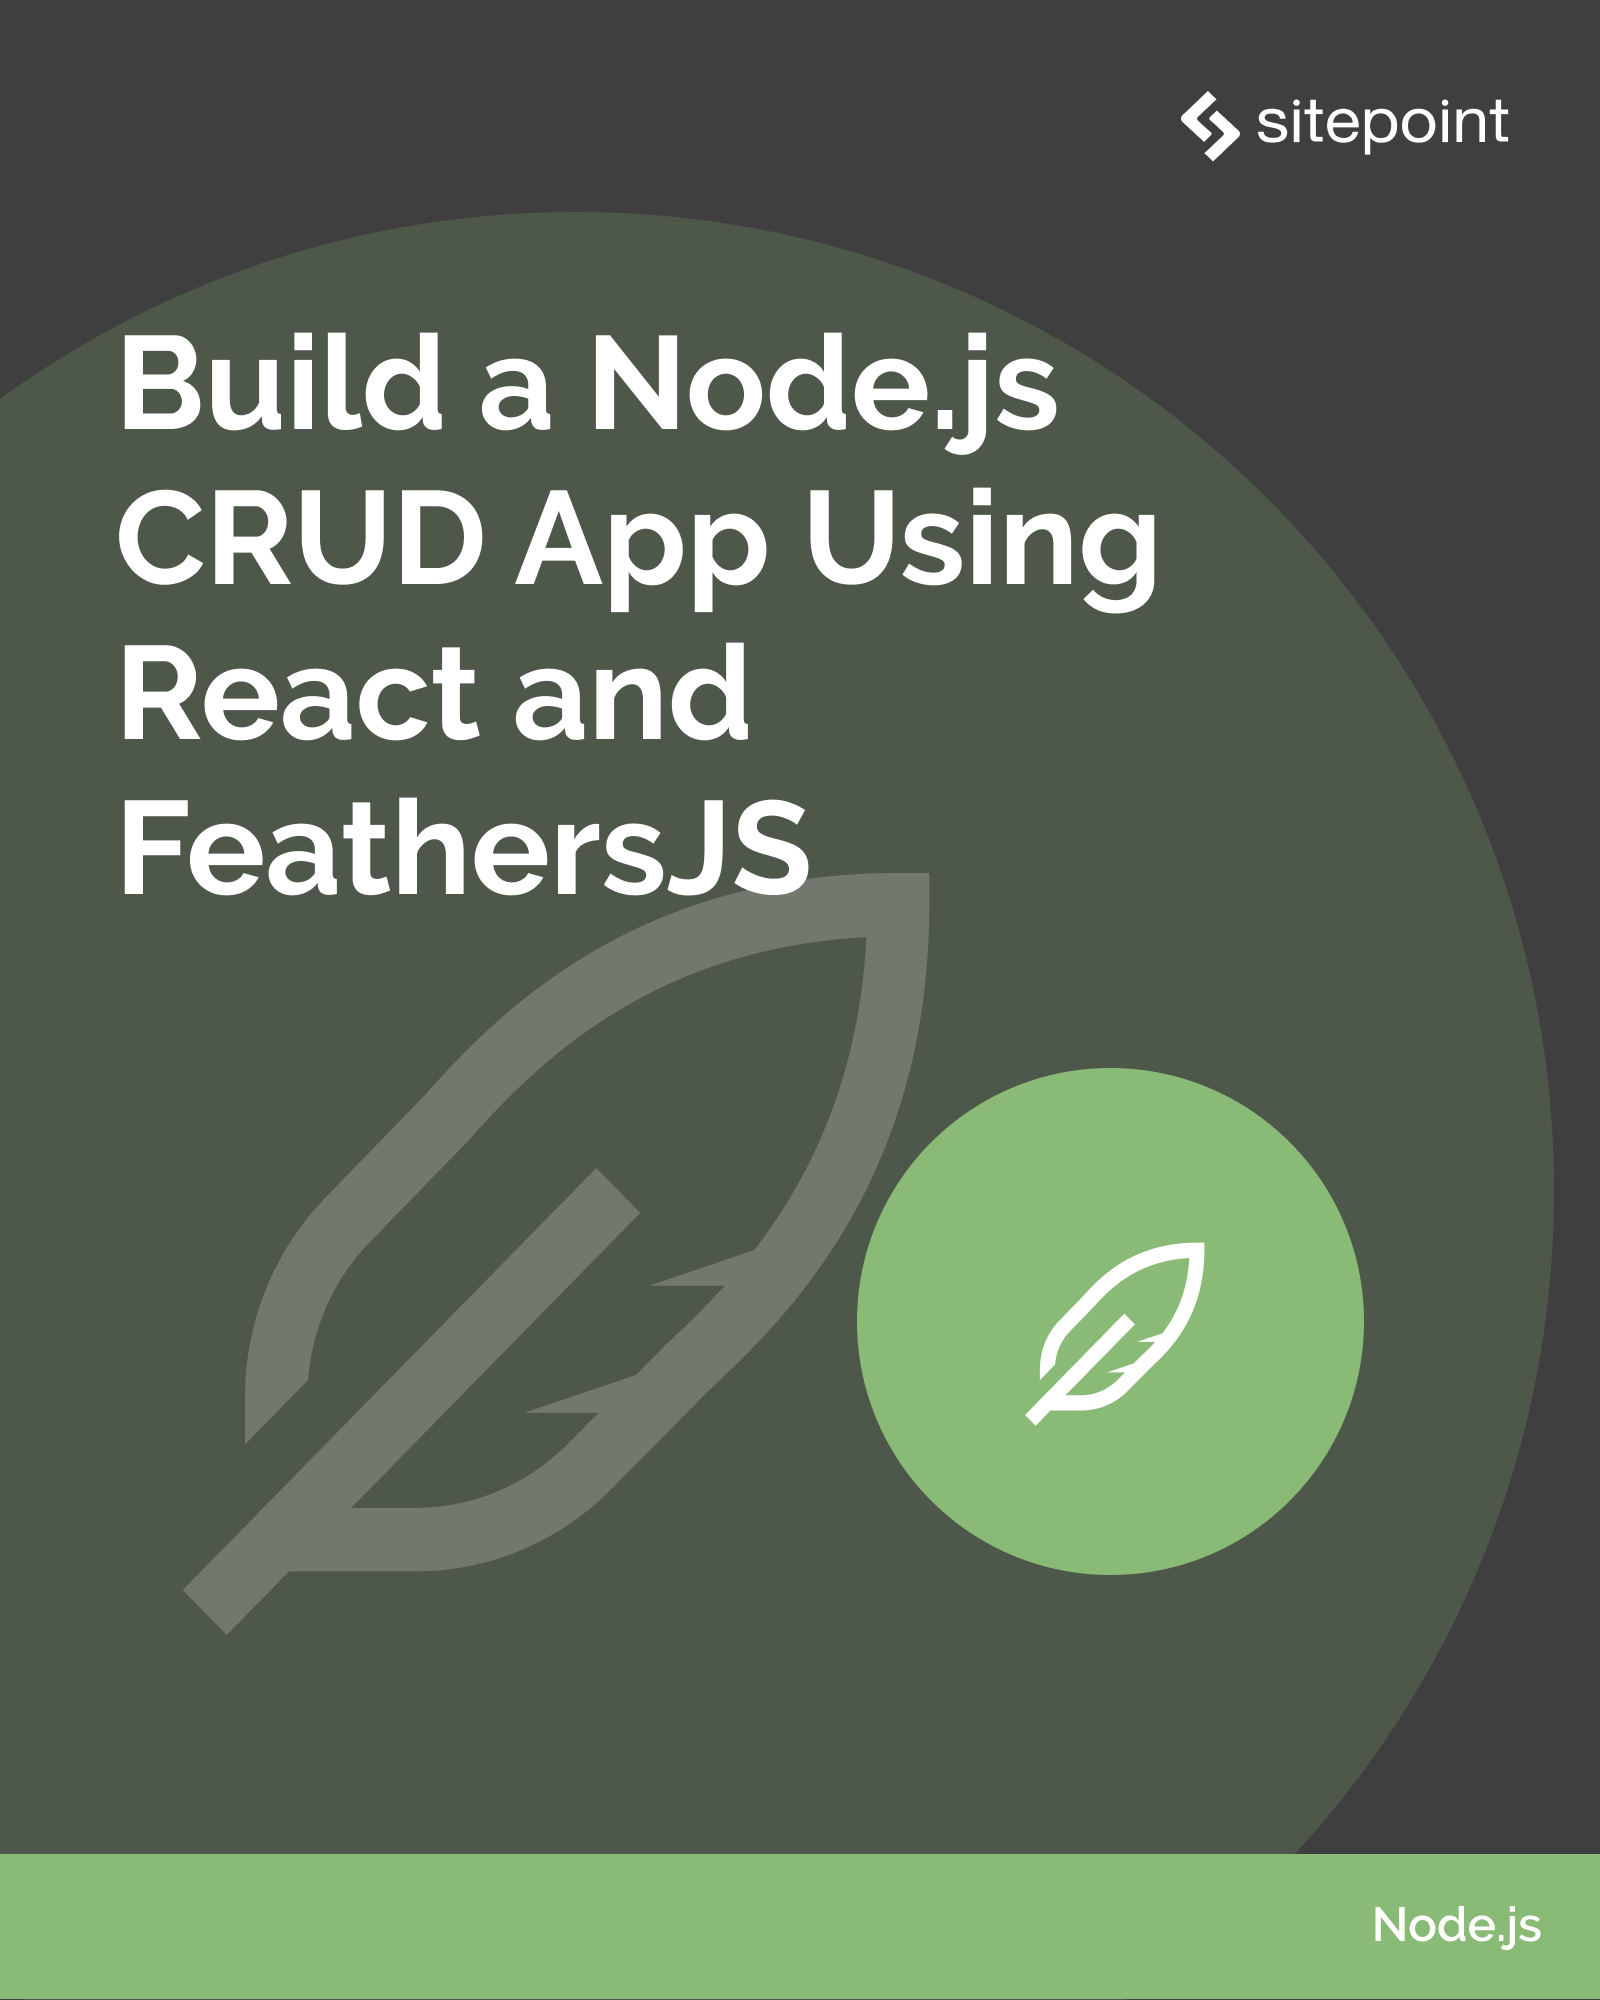 Build a Node.js CRUD App Using React and FeathersJS